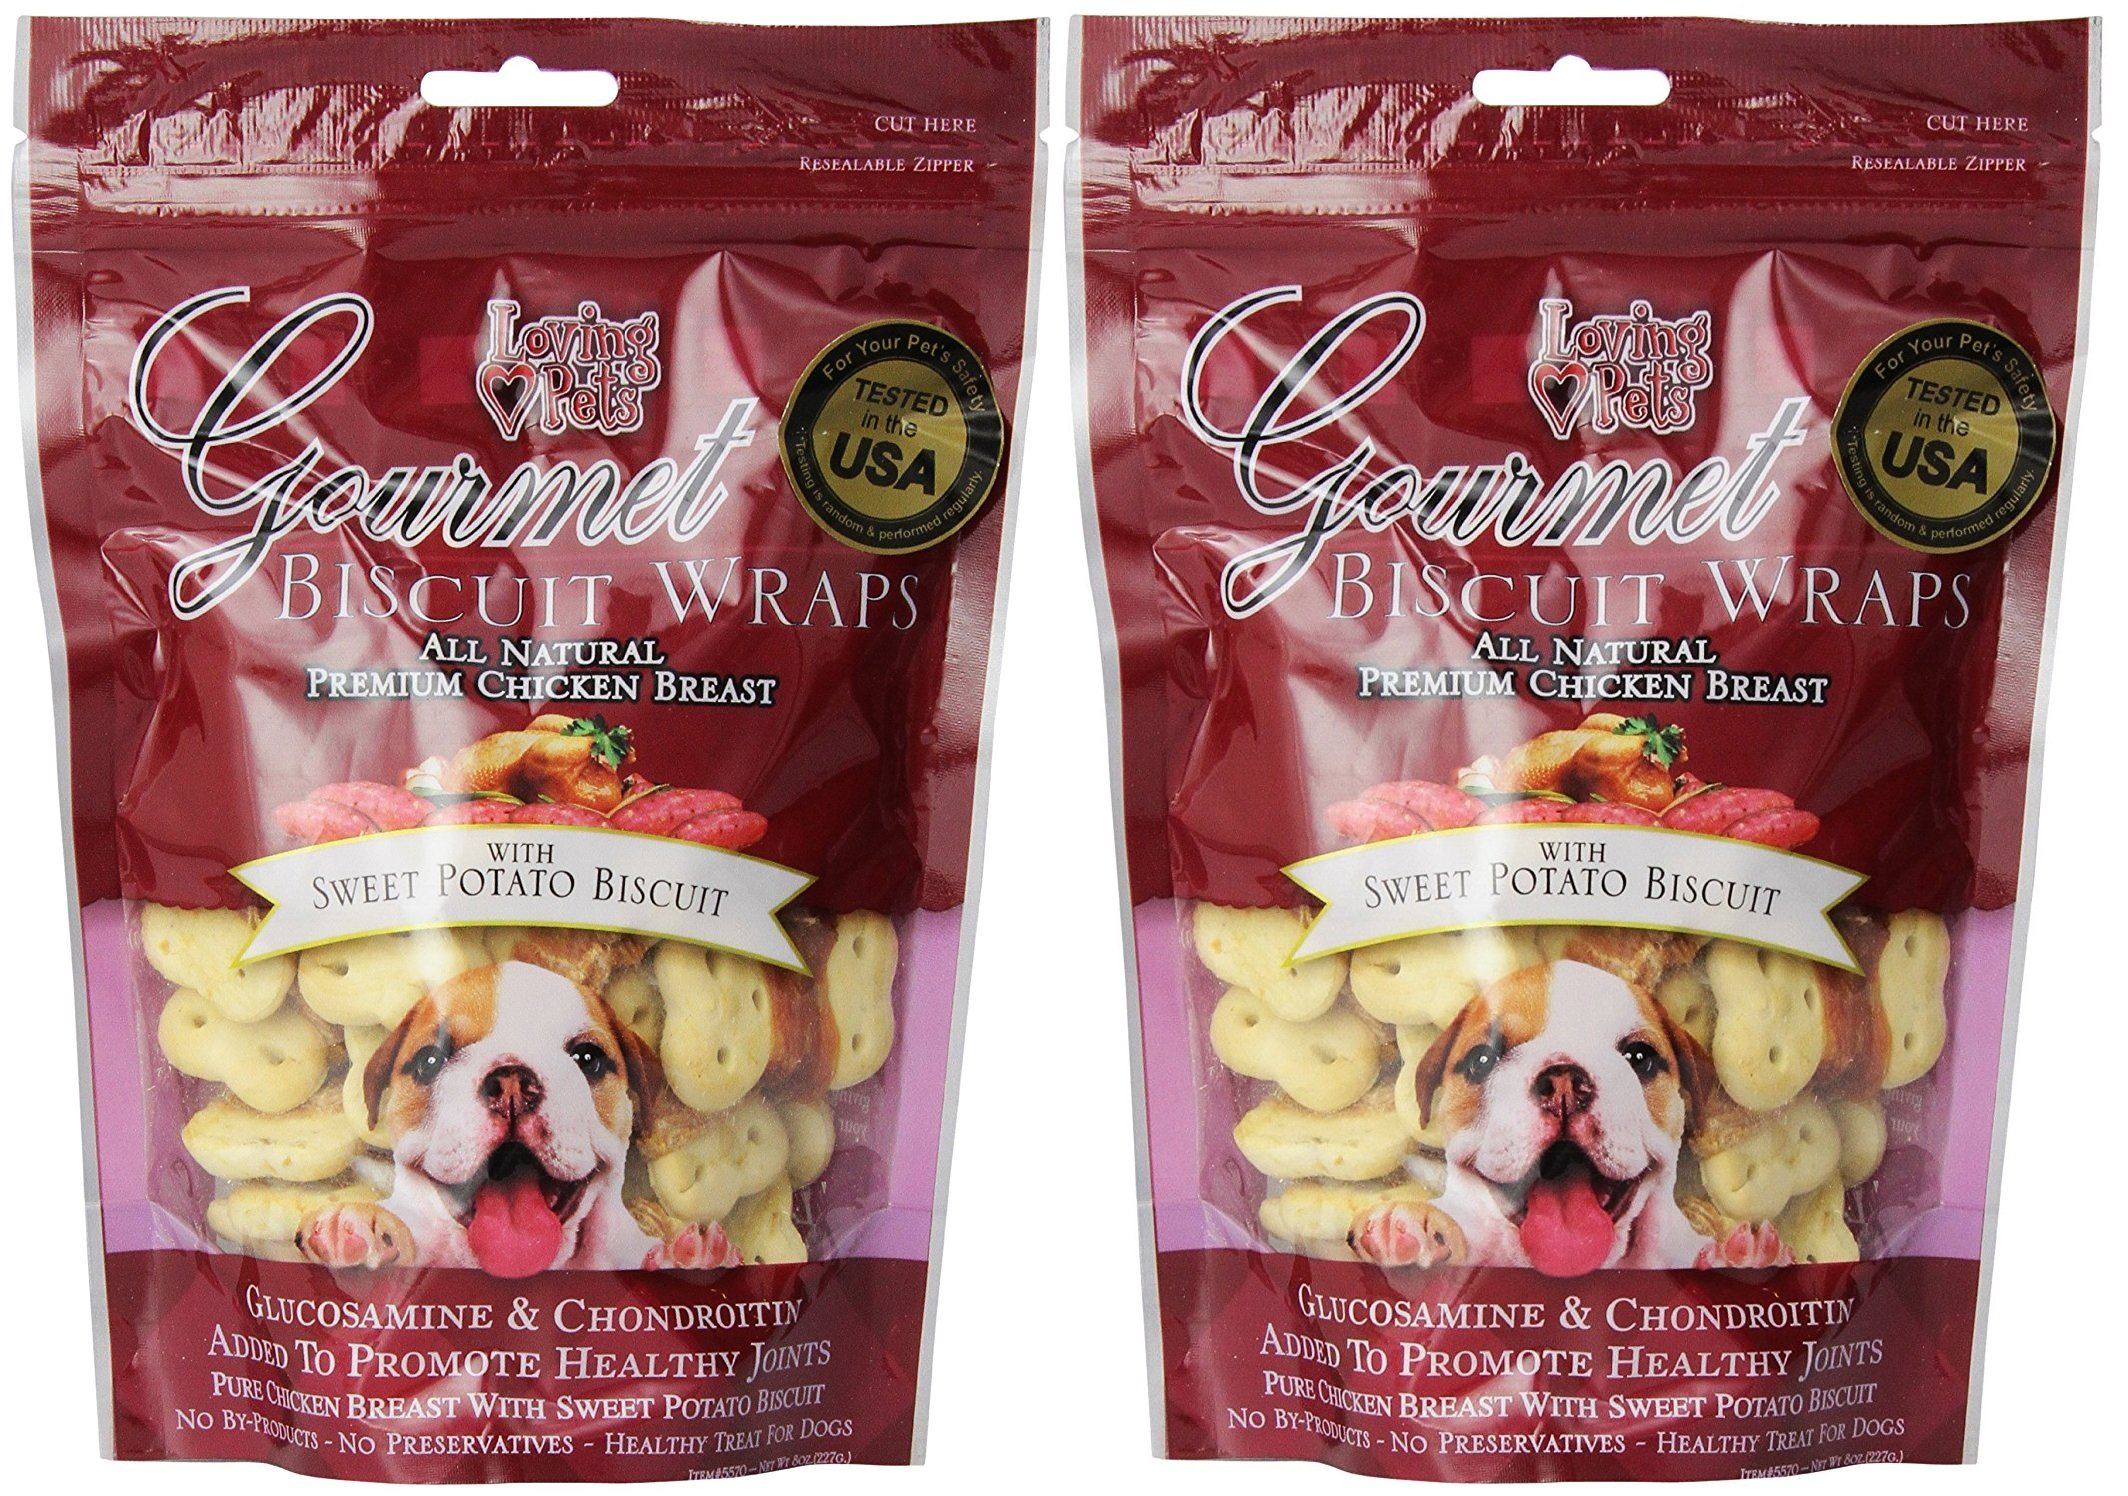 (2 Pack) Loving Pets All Natural Premium Sweet Potato Biscuit and Chicken Wraps with Glucosamine and Chondroitin Dog Treats, 8 oz by Loving Pets (Image #1)